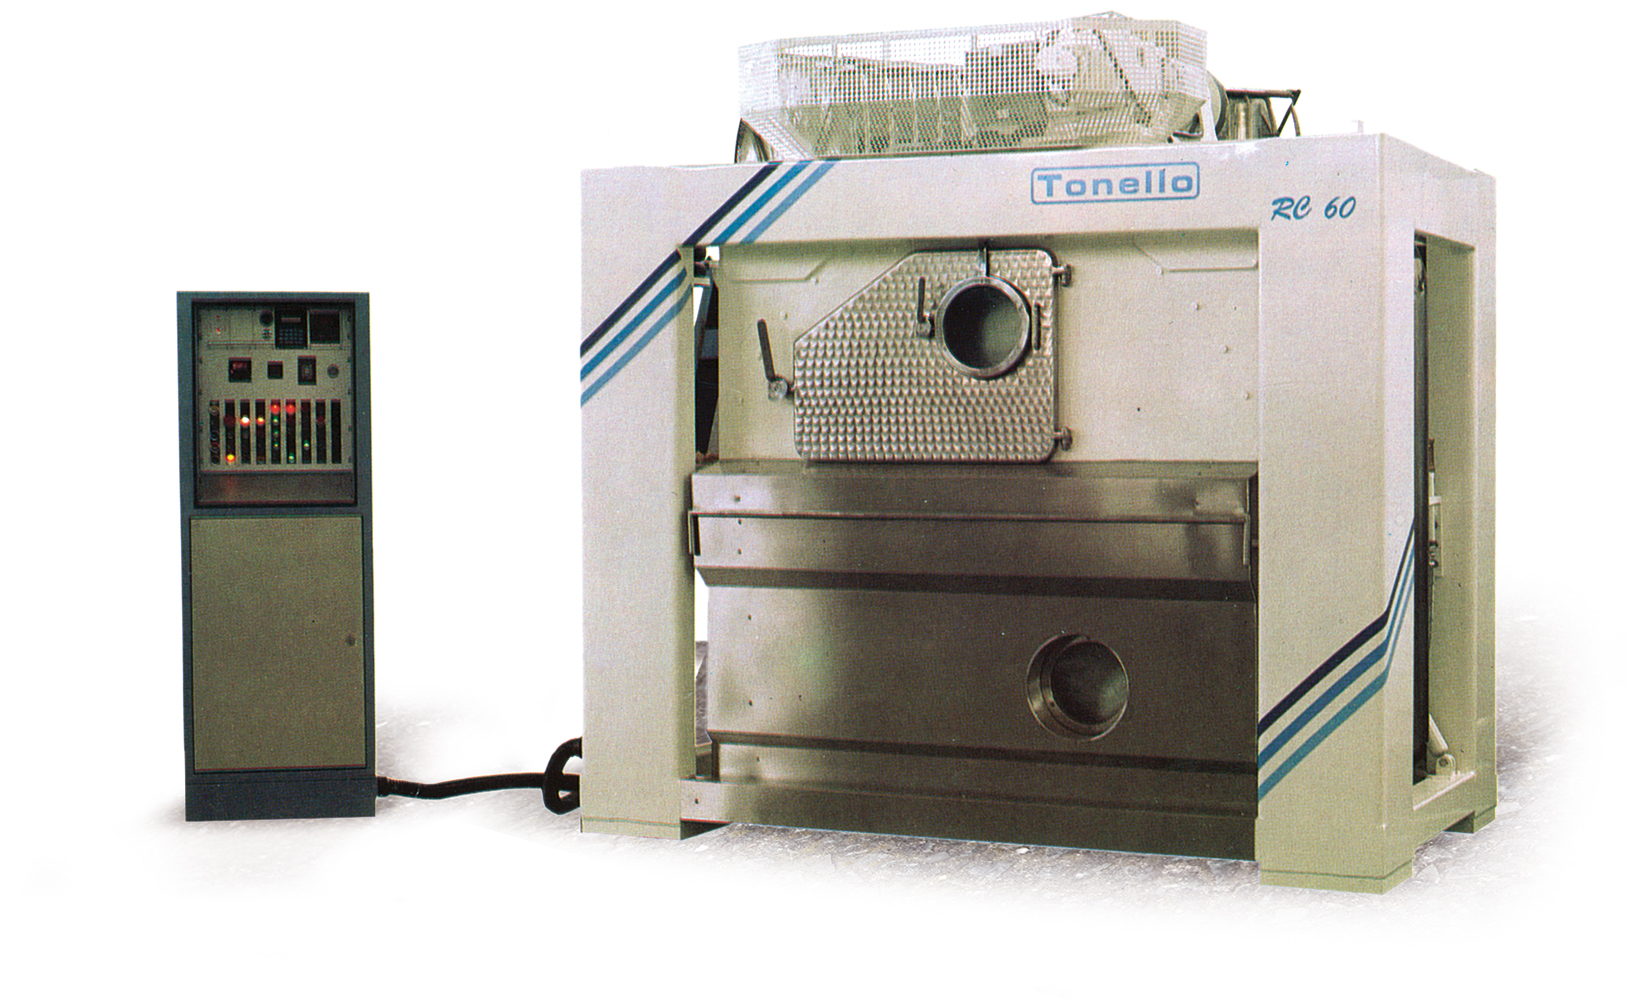 Tonello pre-washed jeans first laundry washing machine RC 60-120. © 2017 Tonello - All Rights Reserved.